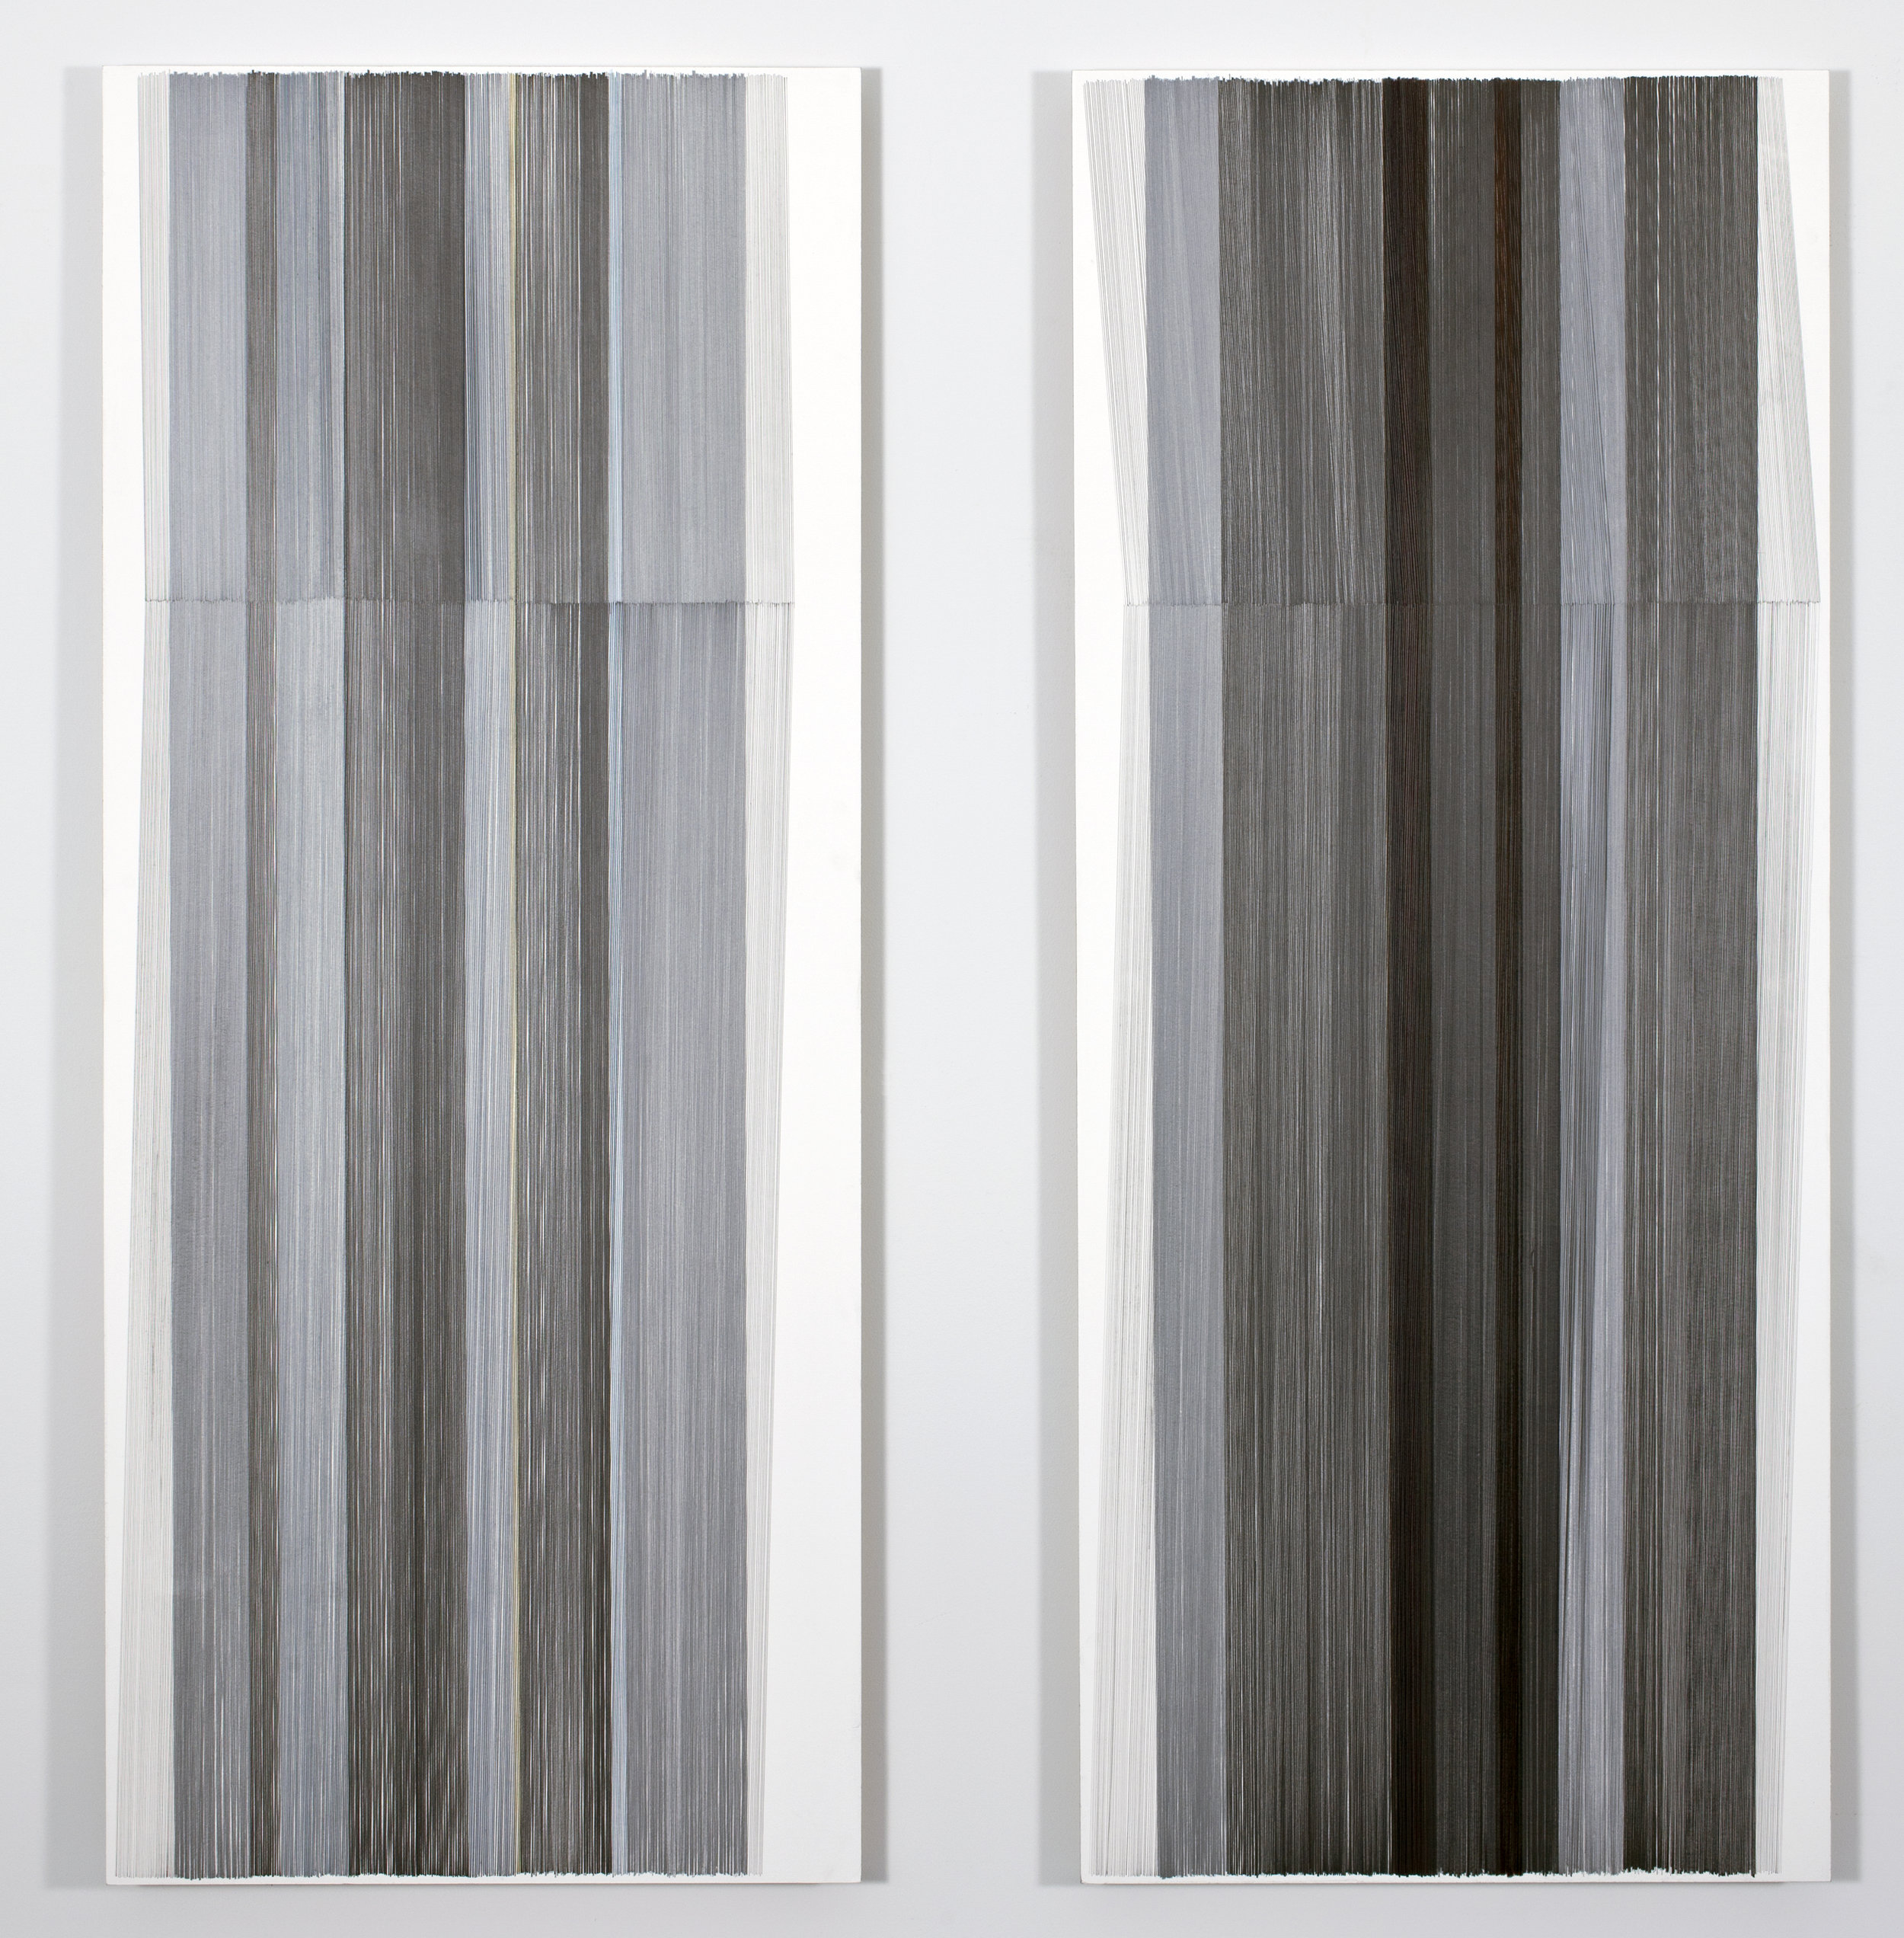 unfold 23 a&b   2016   graphite & colored pencil on mat board   24 by 50 inches each